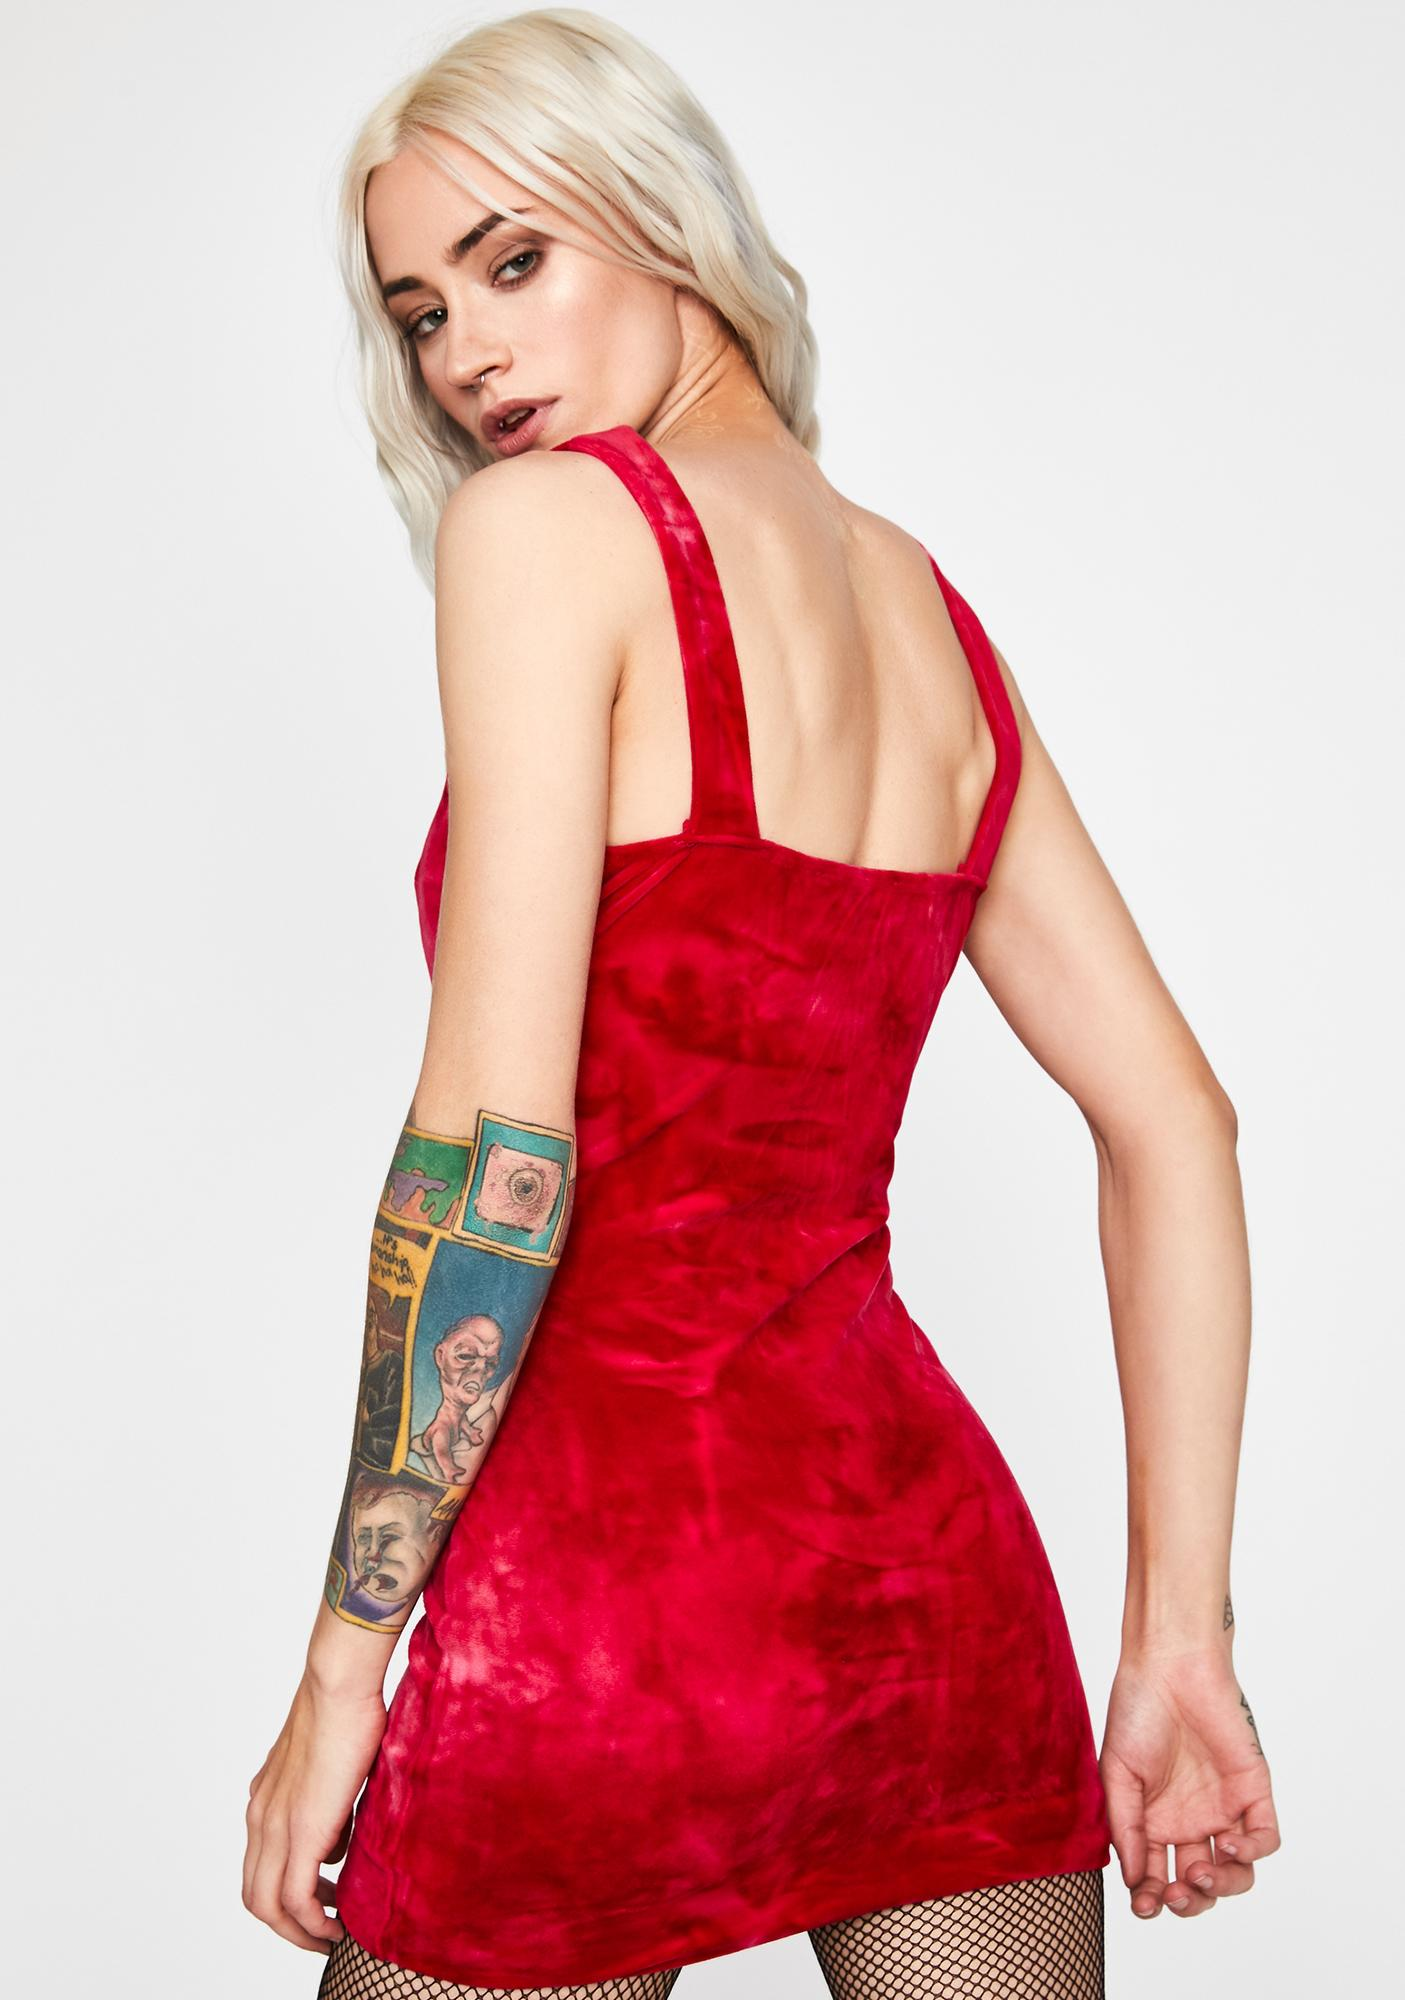 Hot Ruthless Temptations Velvet Dress